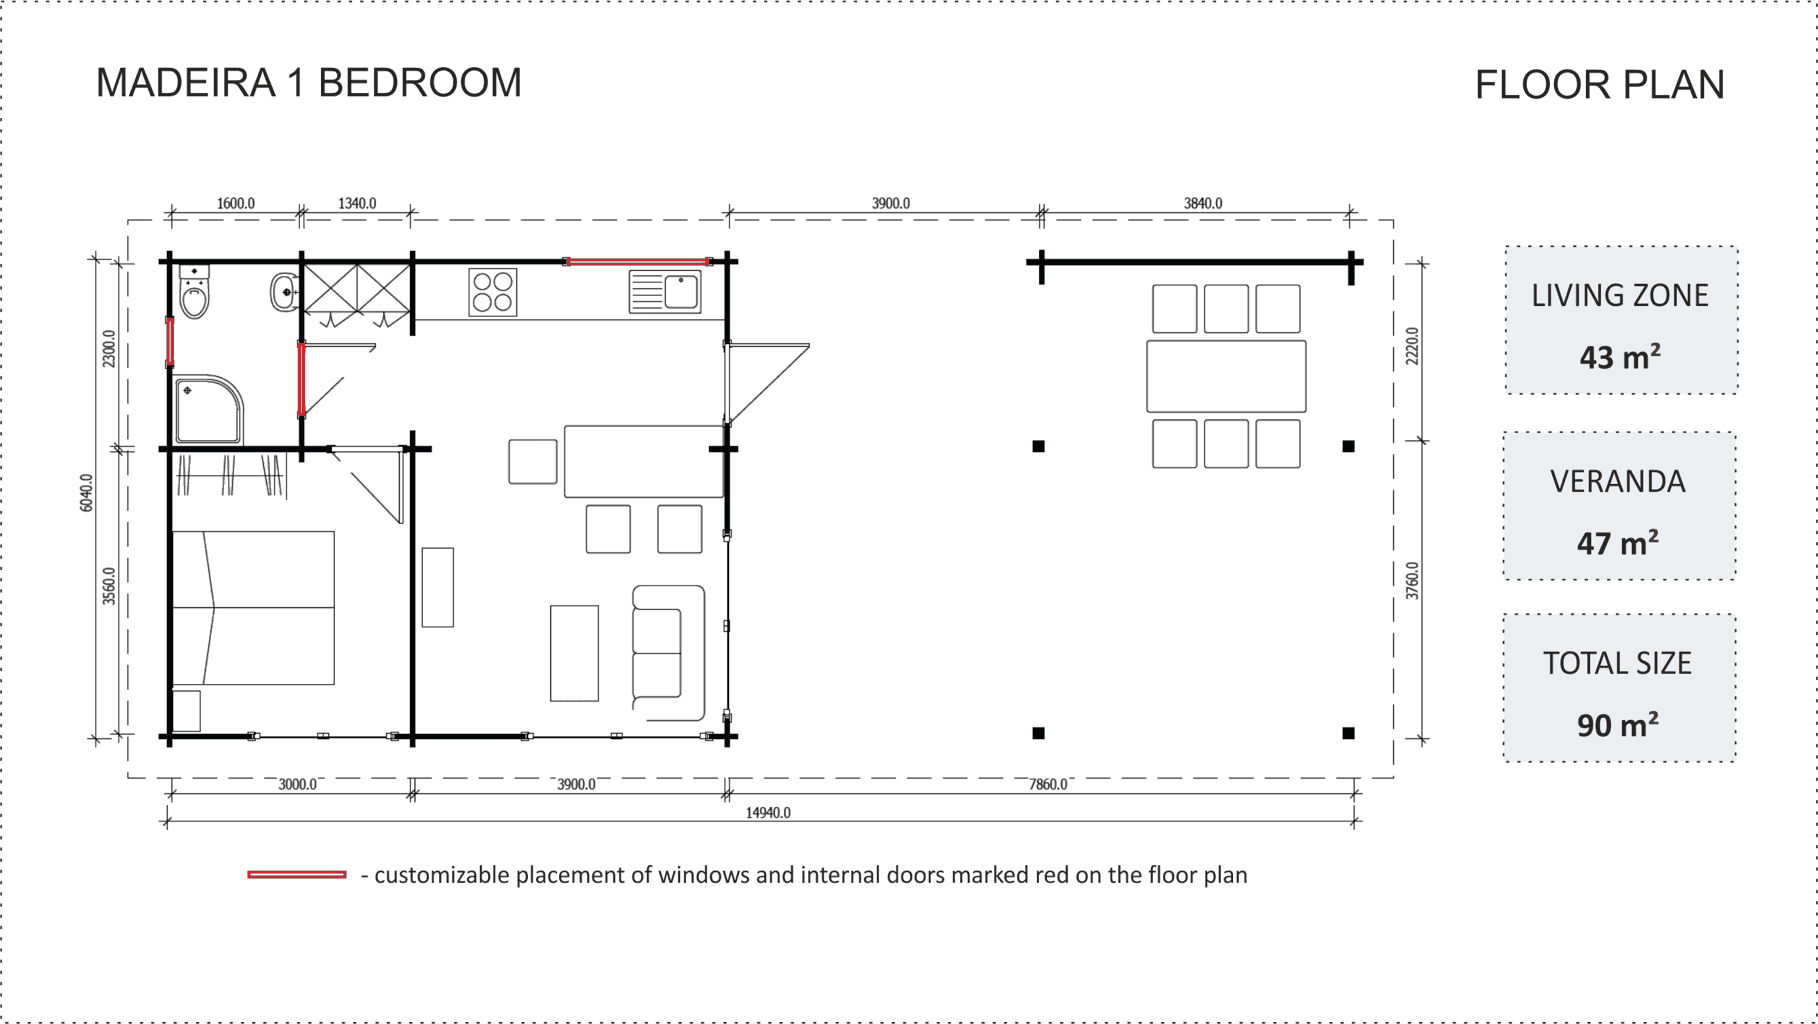 Granny flat Madeira 1 bedroom floor plan